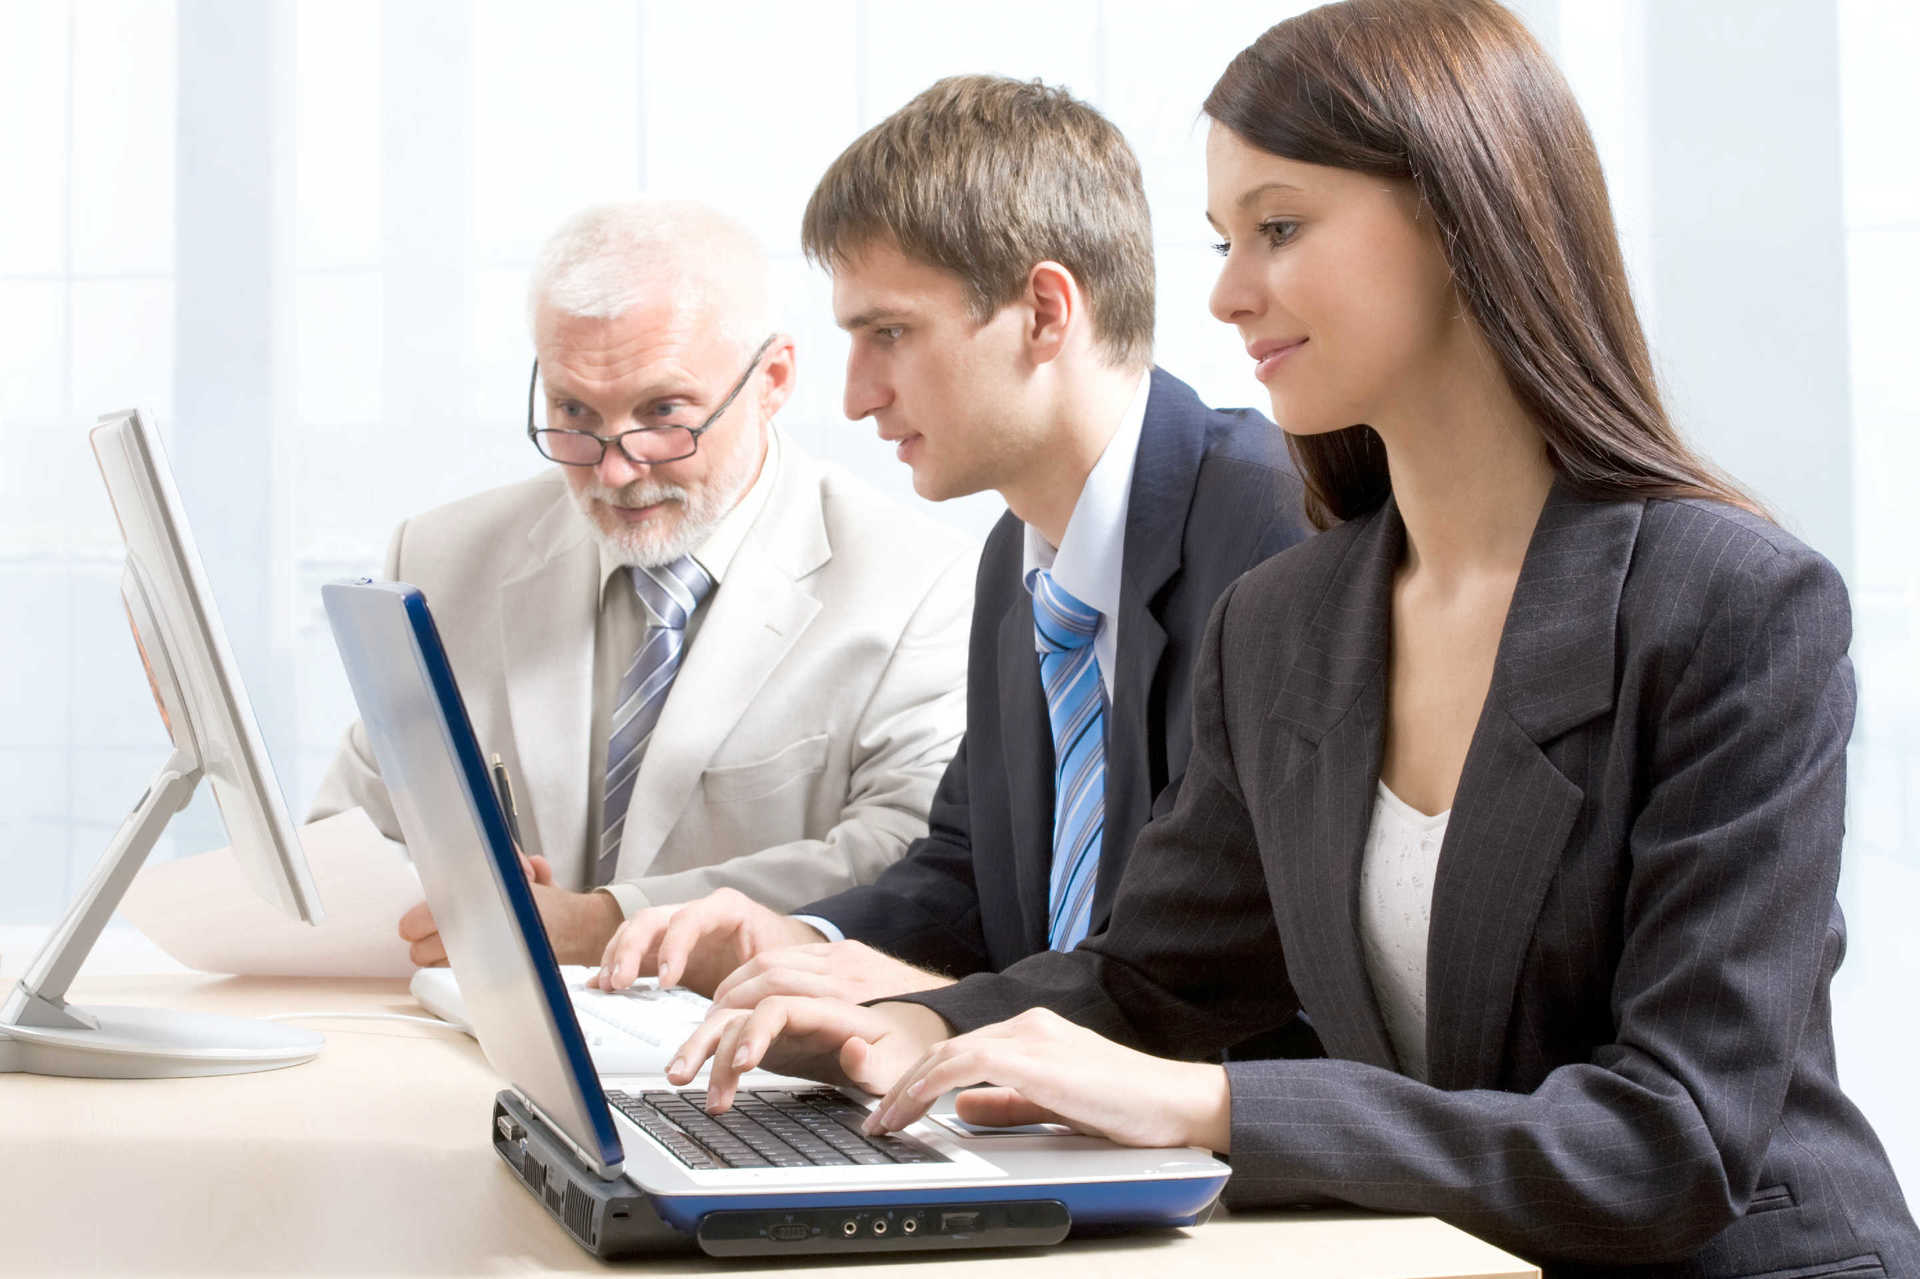 Top 5 Benefits Of Investing In Collaborative Tools